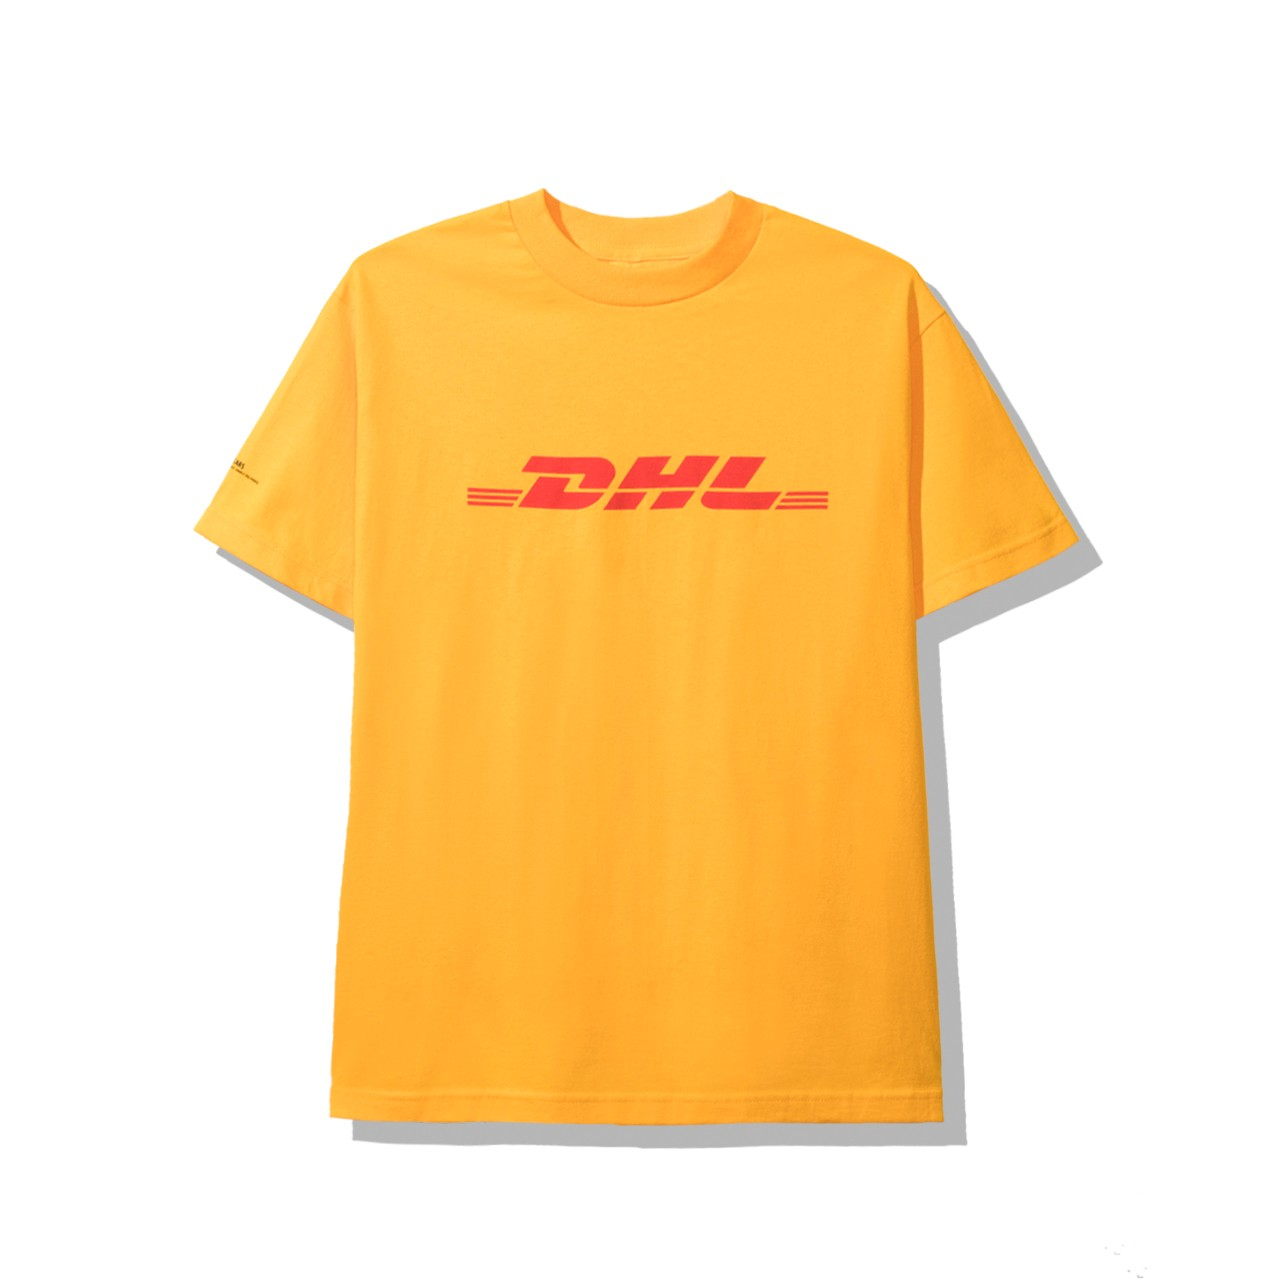 Supreme Fall Winter 2019 Week 5 Drop List Anti Social Social Club DHL Off White END S.R. STUDIO. LA. CA. Sterling Ruby Michael Kagan Billionaire Boys Club Patta POP Trading Company